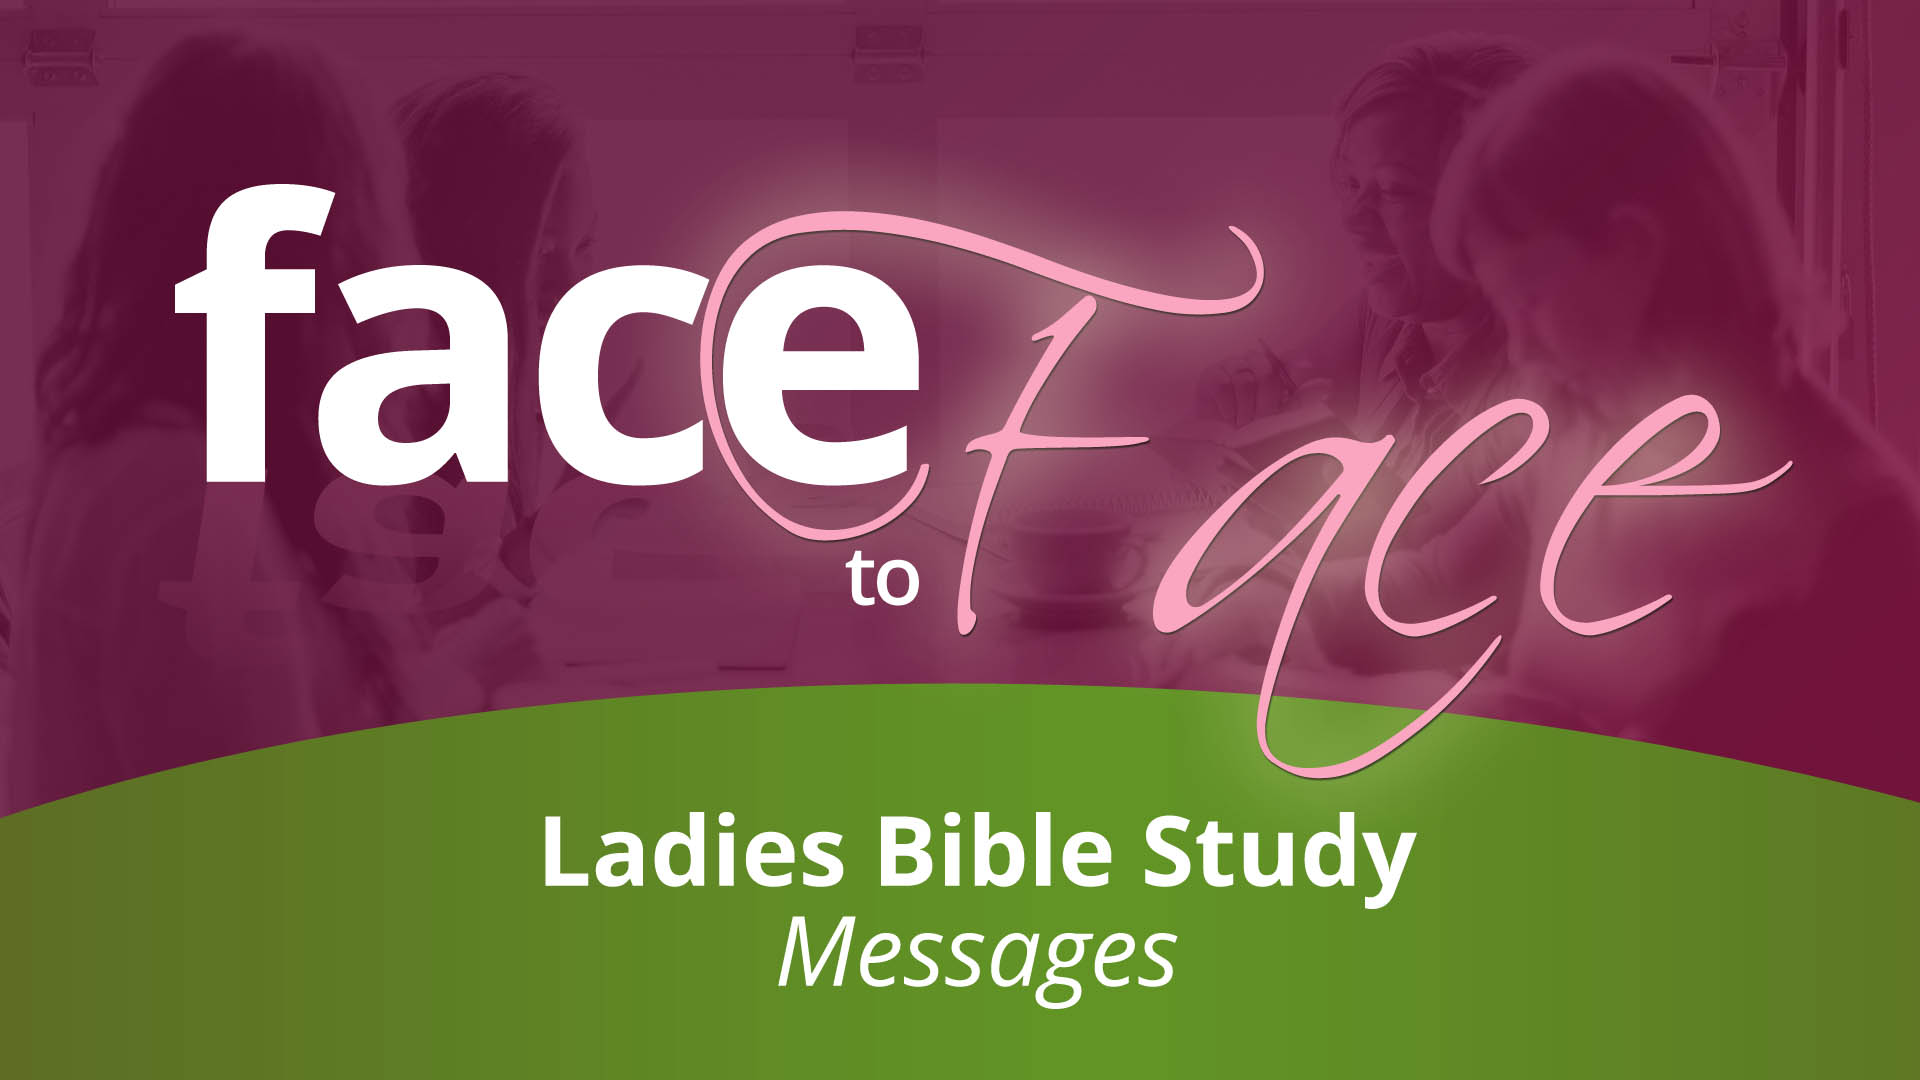 Face to Face Ladies Bible Study Message